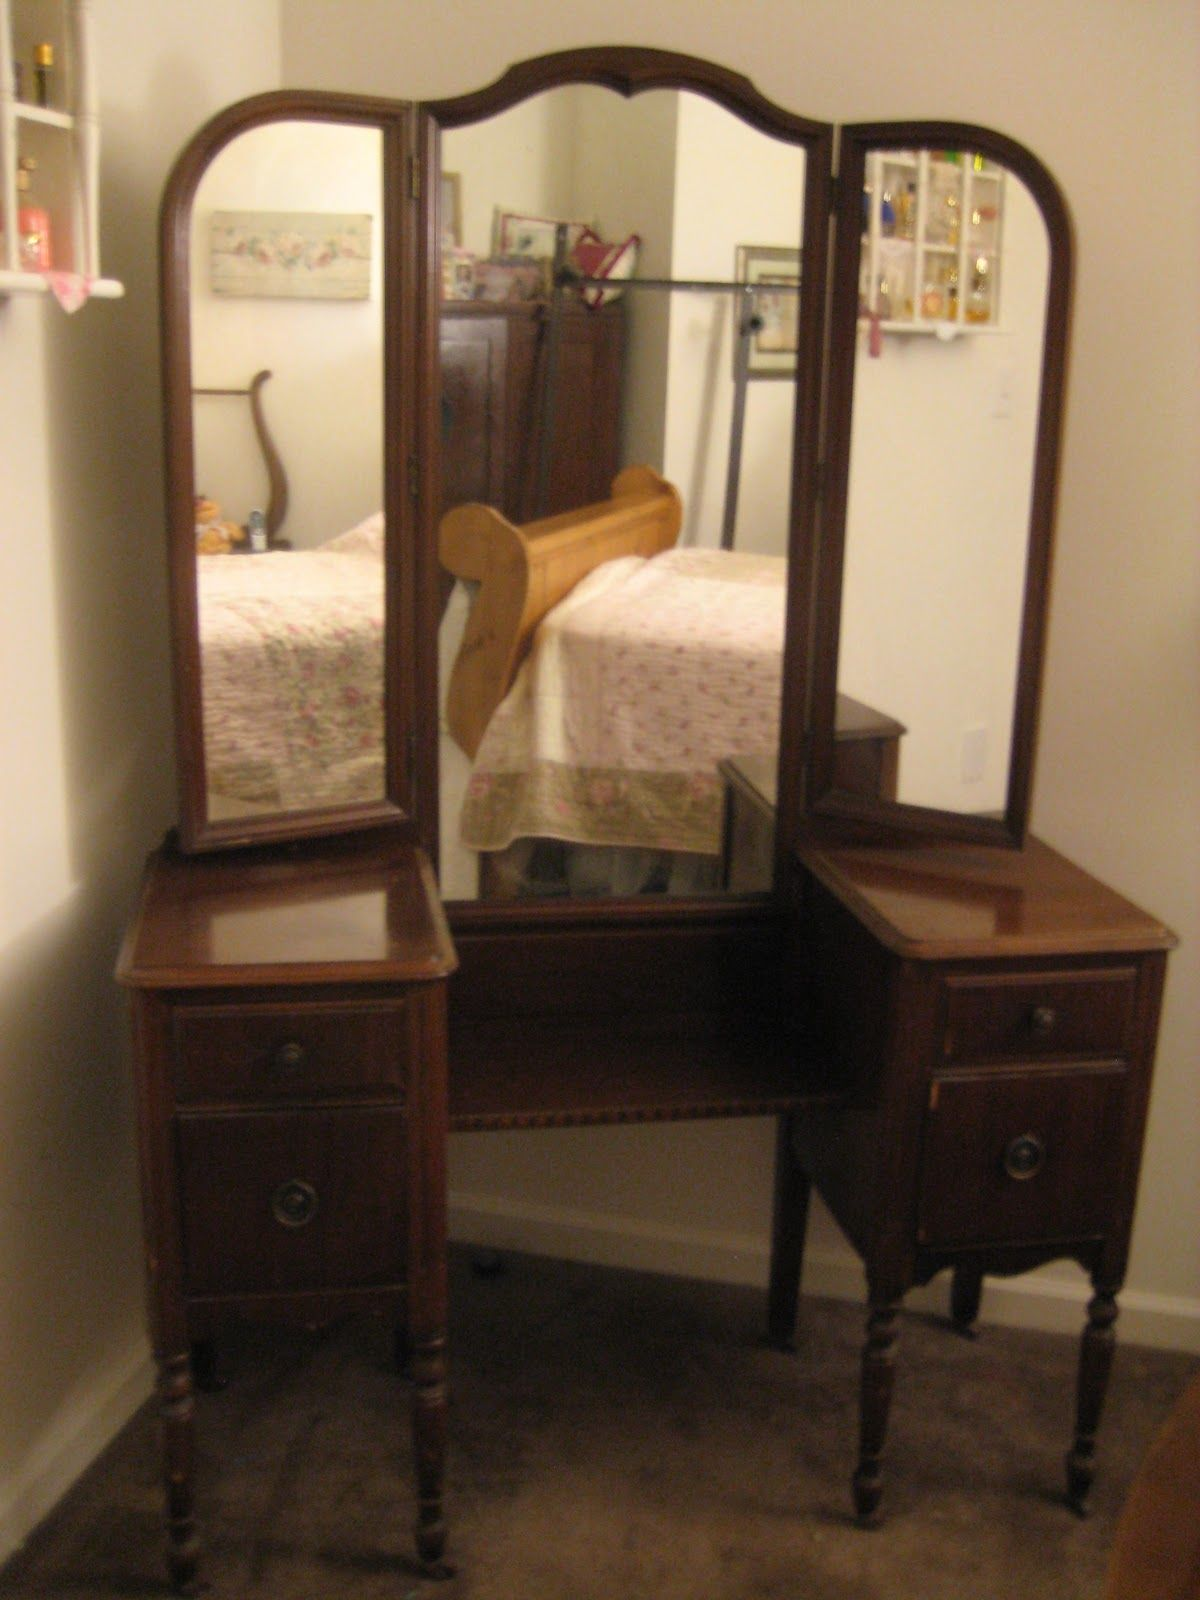 Antique Bedroom Vanity - Antique Bedroom Vanity Bedroom Pinterest Vanities And Bedrooms